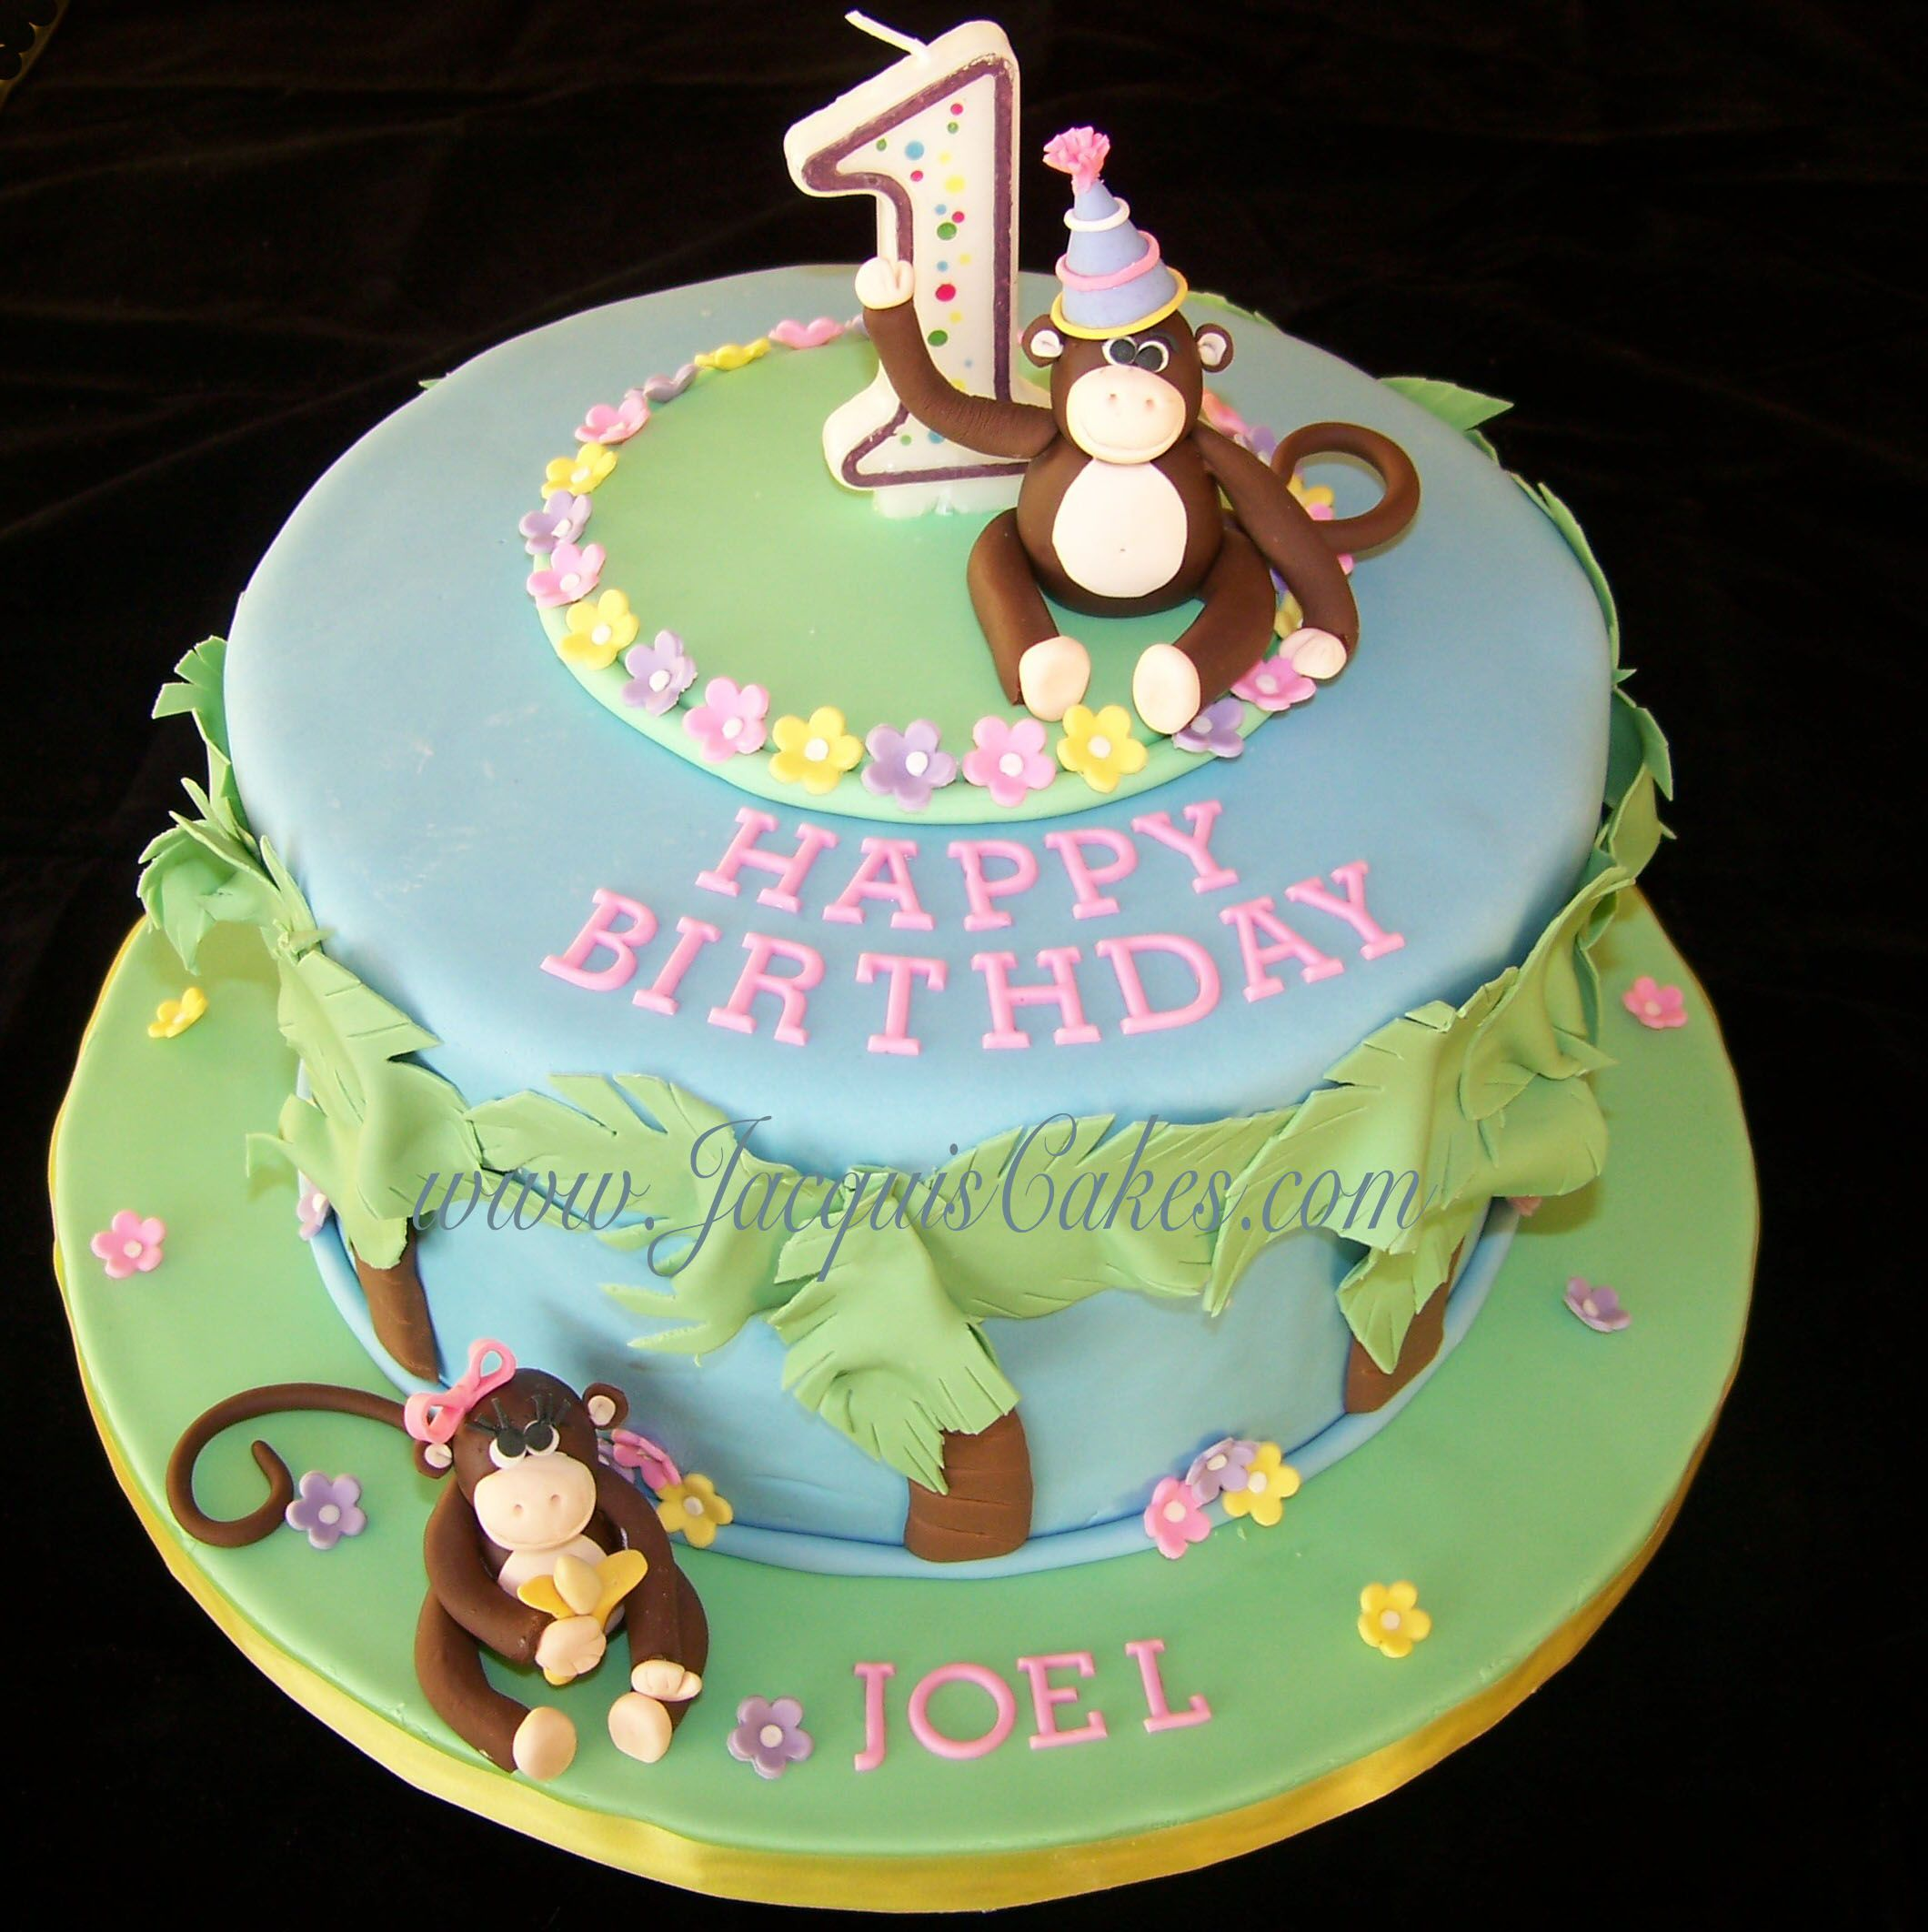 Cute cake for Judes 1st birthday Okay I know hes only two months